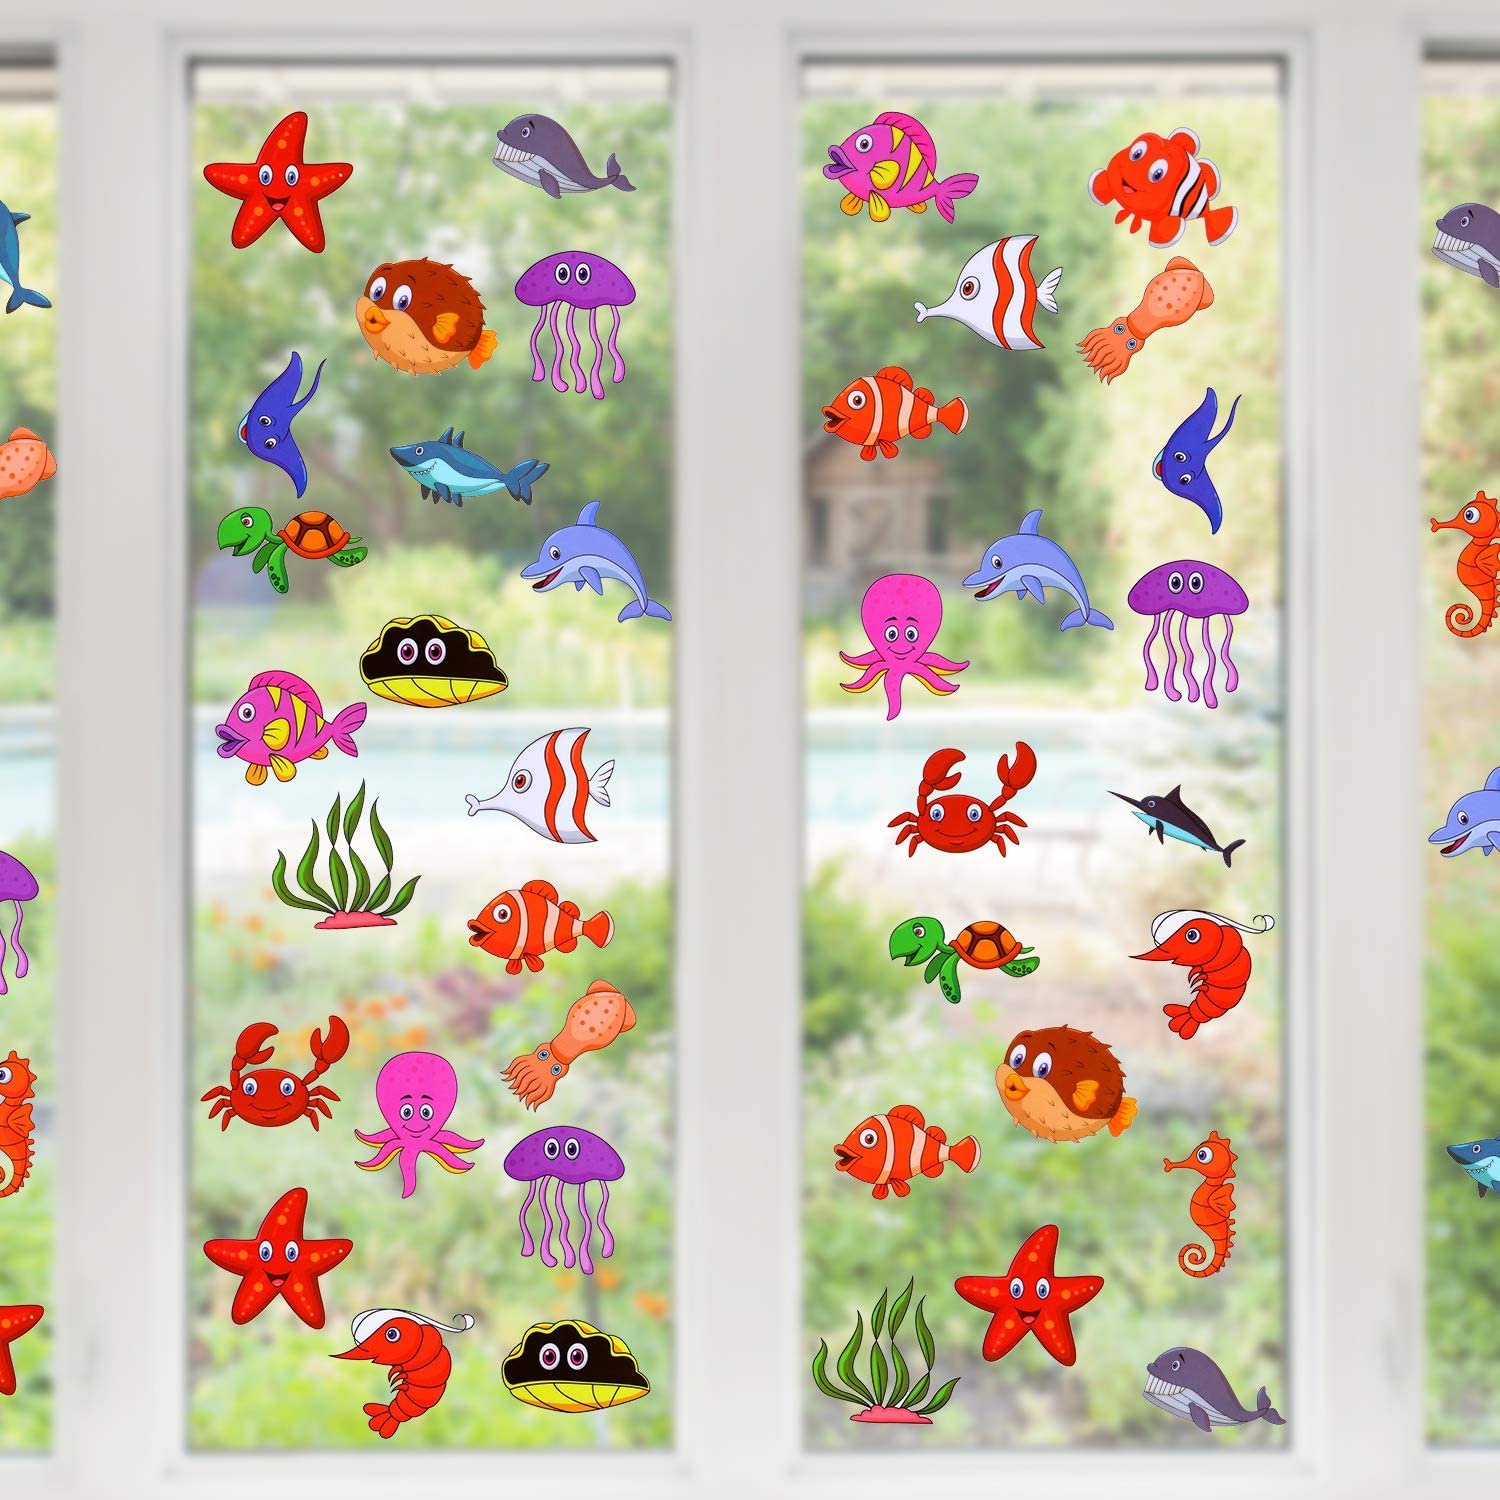 200 Pieces Ocean Theme Window Clings Decorative Sea Life Windows Decals Static Stickers with Shark, Fish, Dolphin, Whale Glass Window Clings for Kids and Adults, 10 Sheets